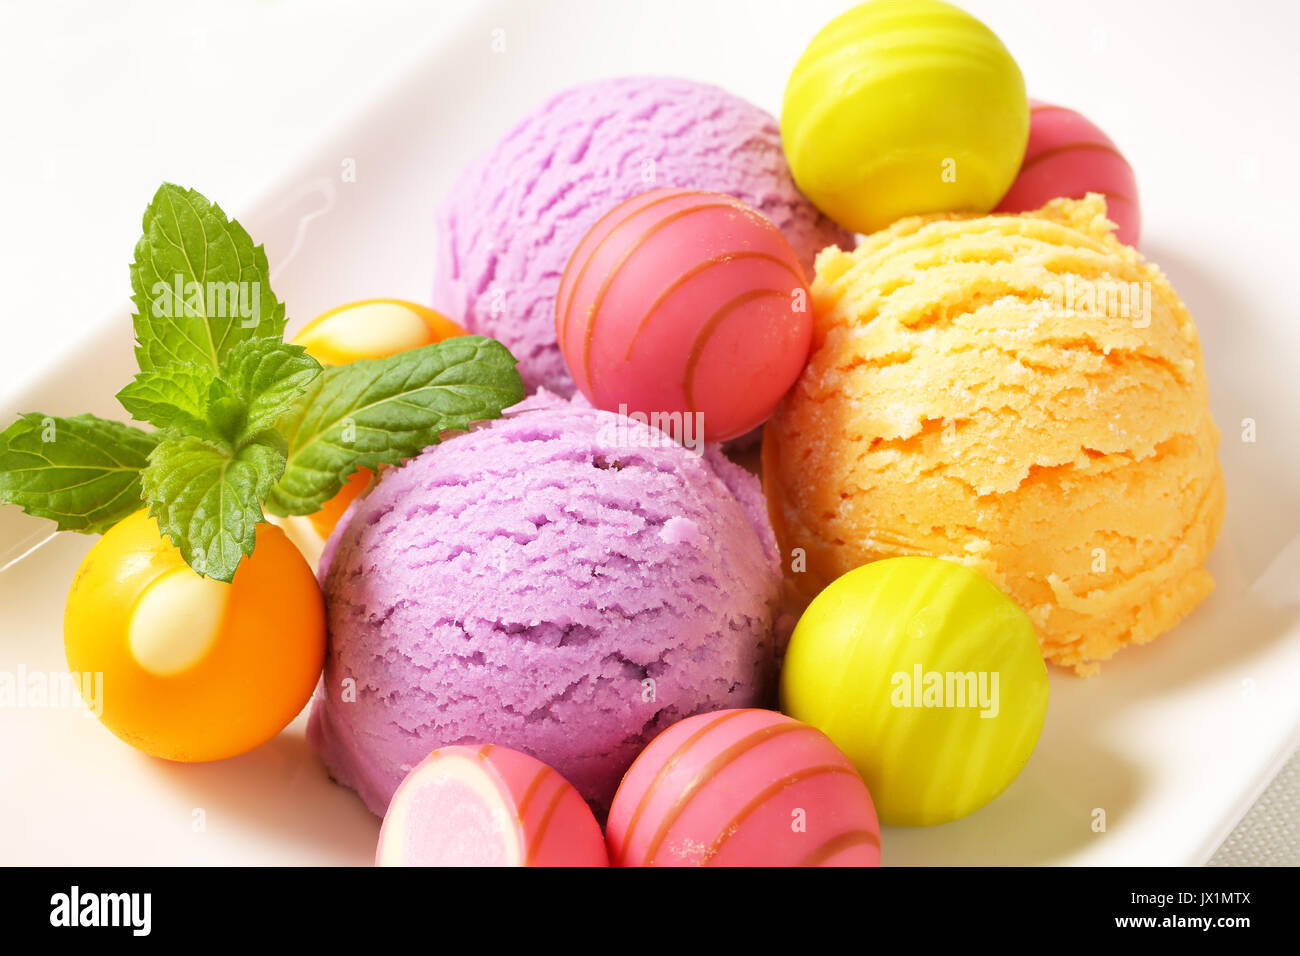 Fruit-flavored ice cream and white chocolate bonbons with fruit ganache filling Stock Photo